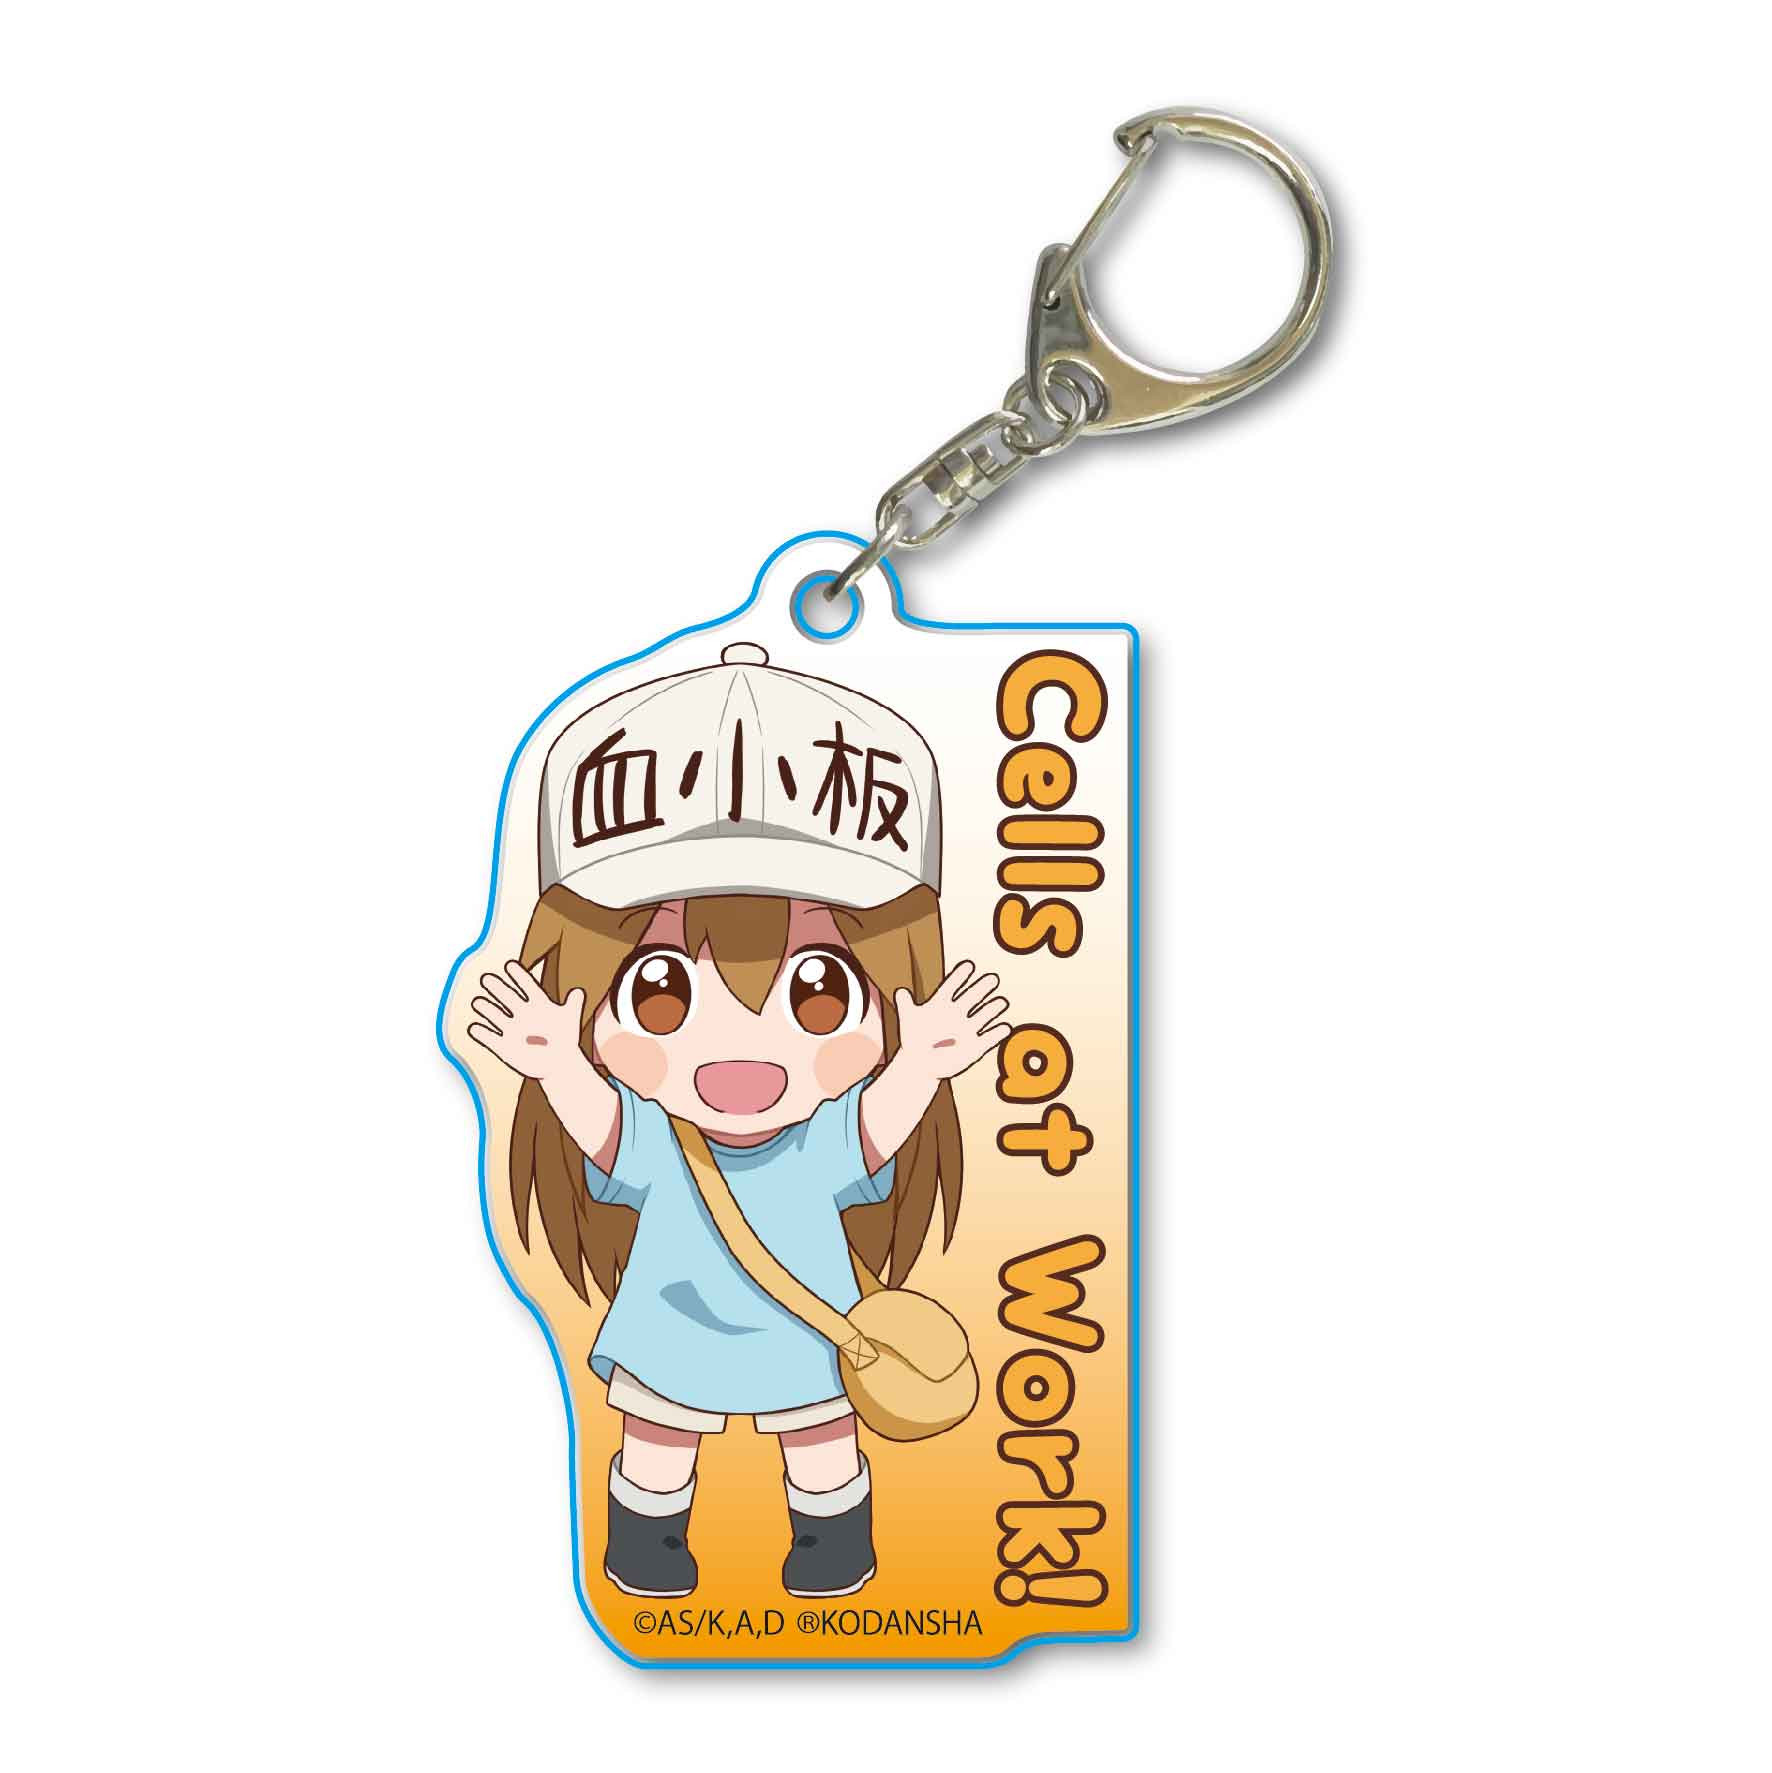 Cells at Work! Banzai Acrylic Key Chain Platelet